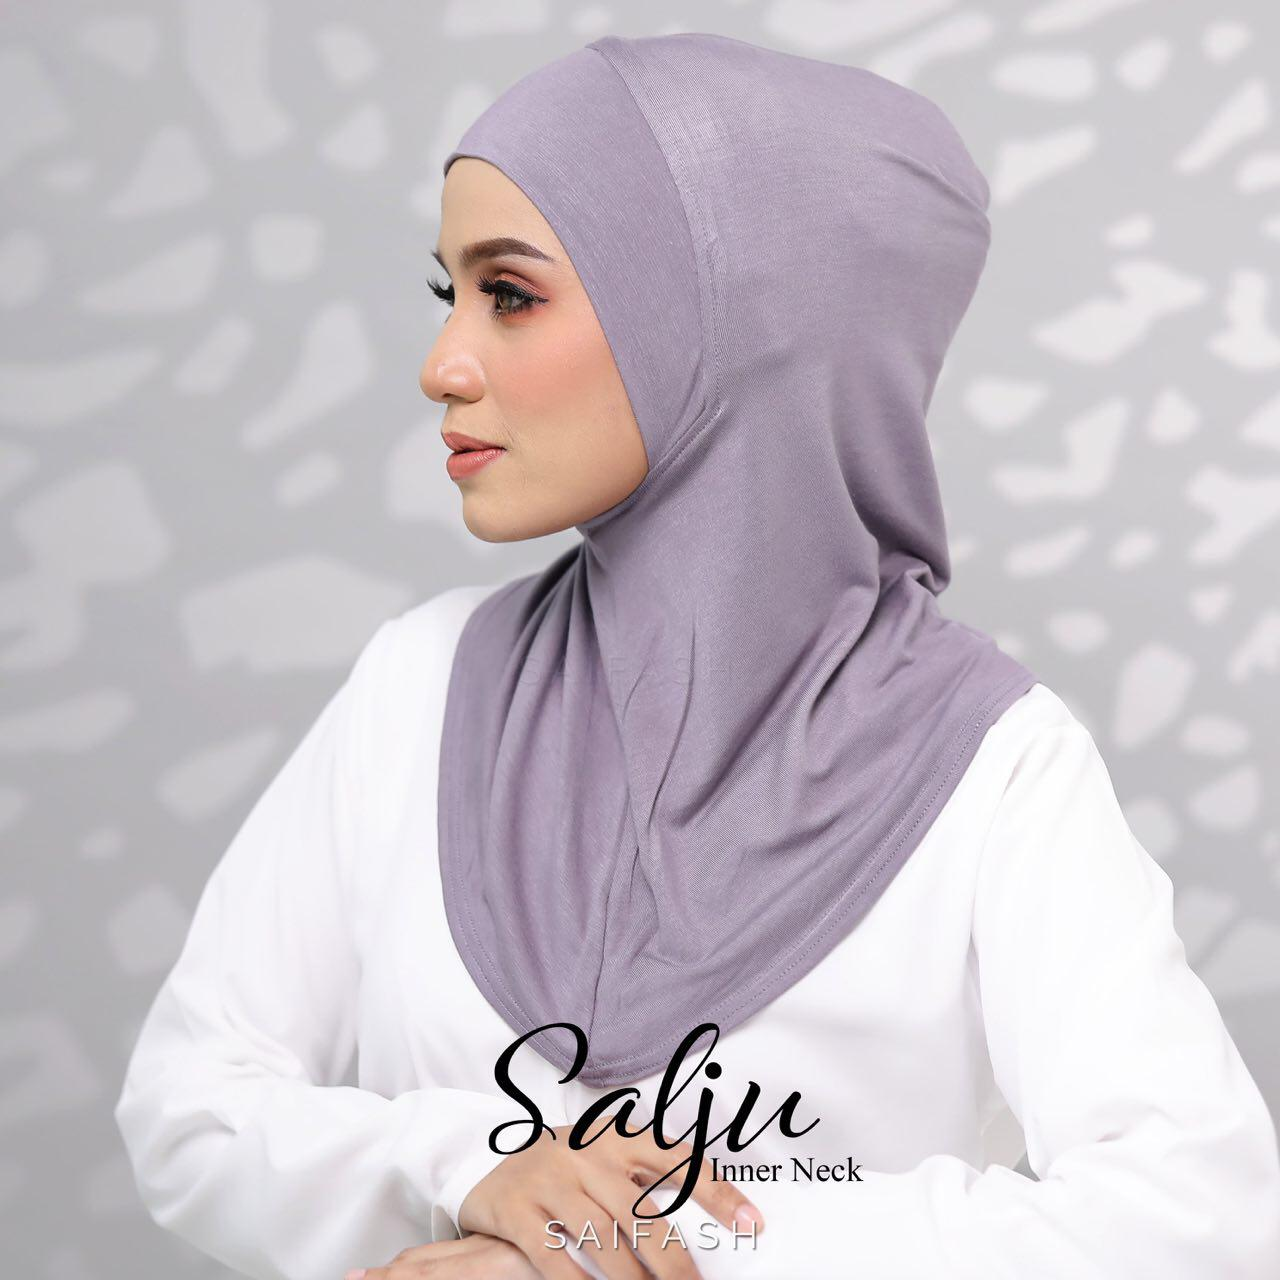 Salju Inner Neck Cover By Saifash